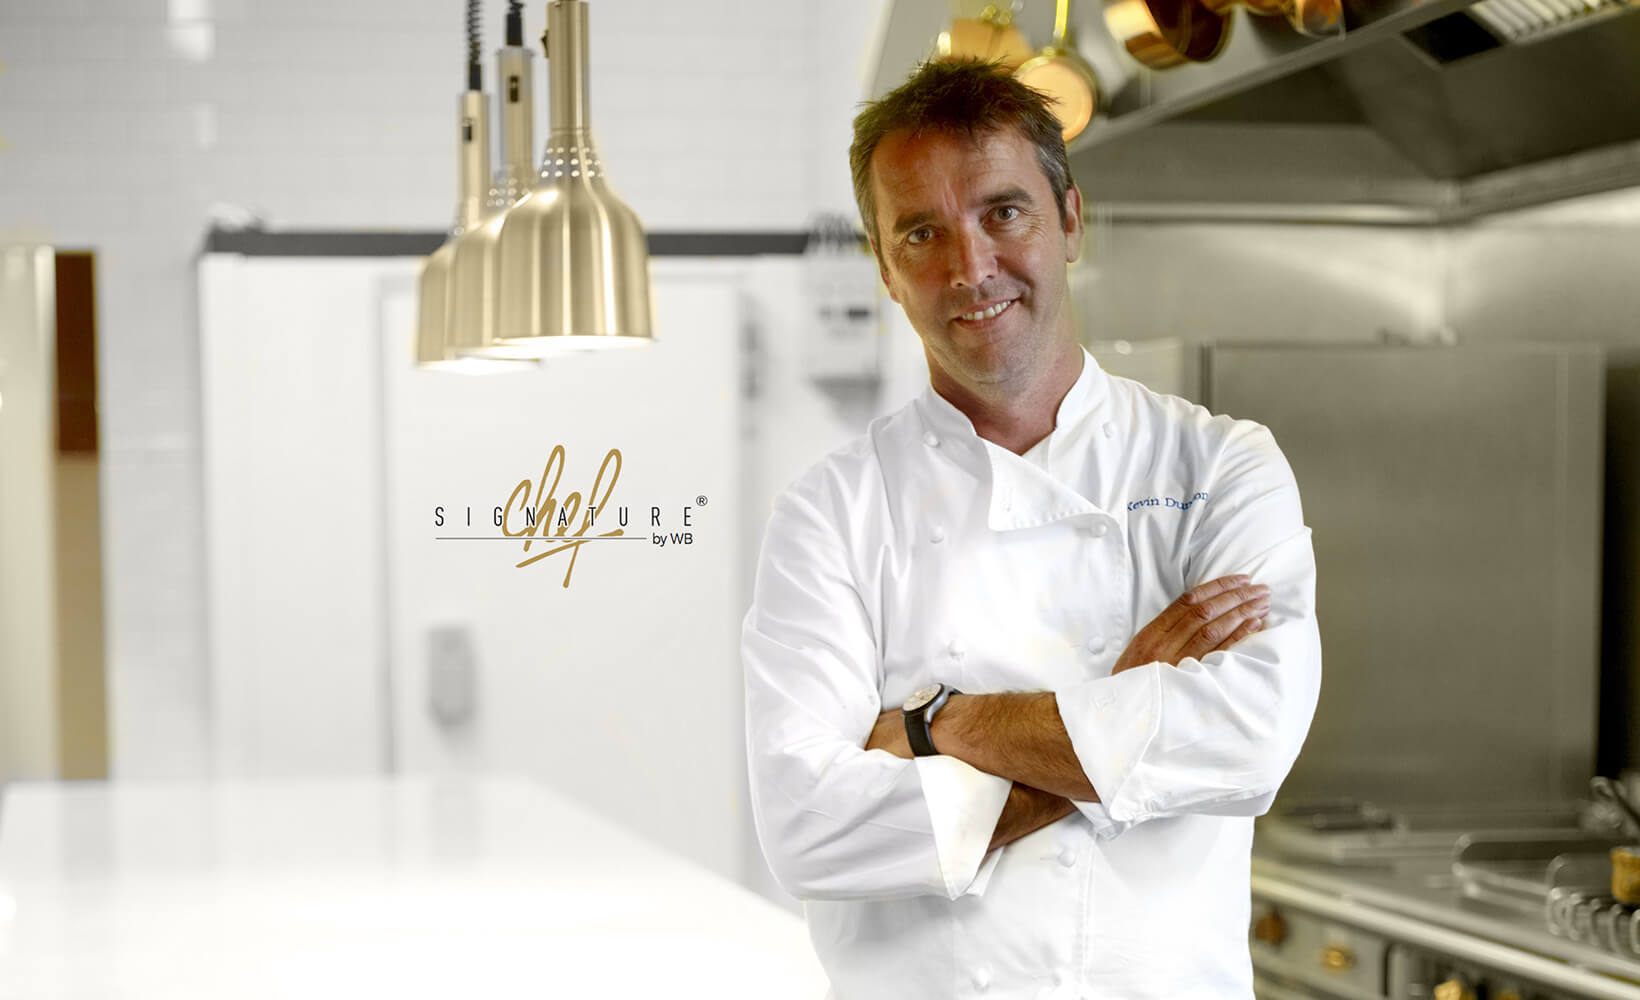 Launch partnership irish chef Kevin DUNDON